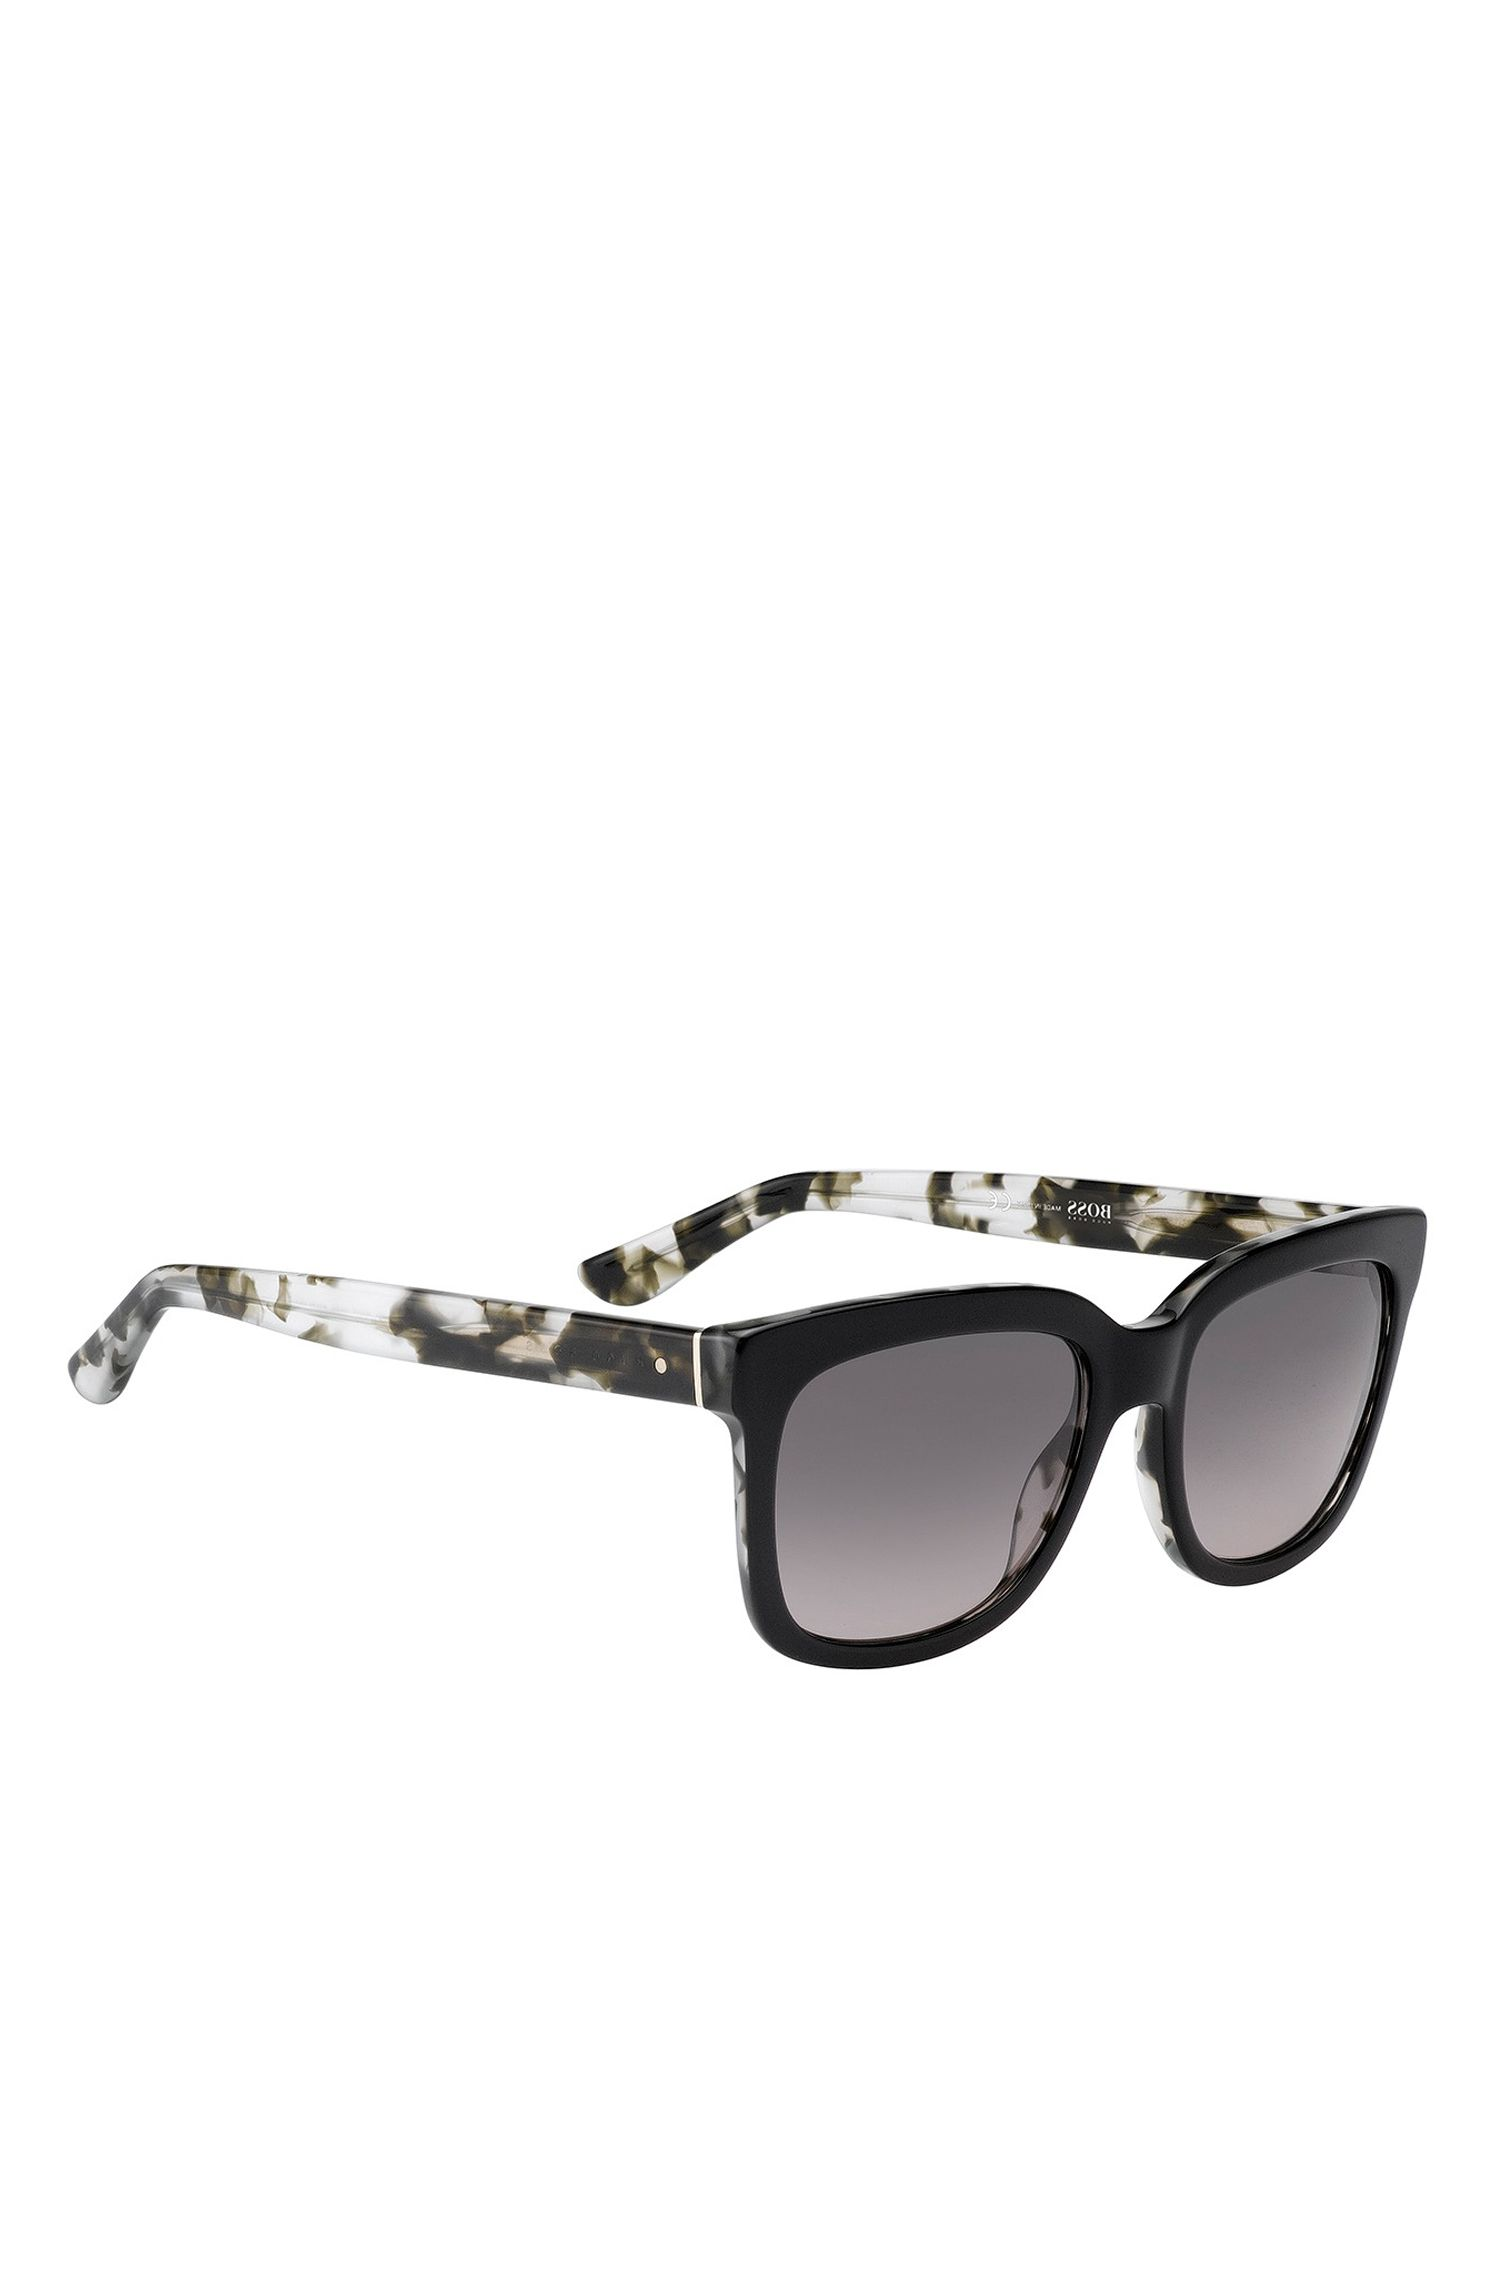 Gradient Lens Rectangular Sunglasses | BOSS 0741S, Assorted-Pre-Pack